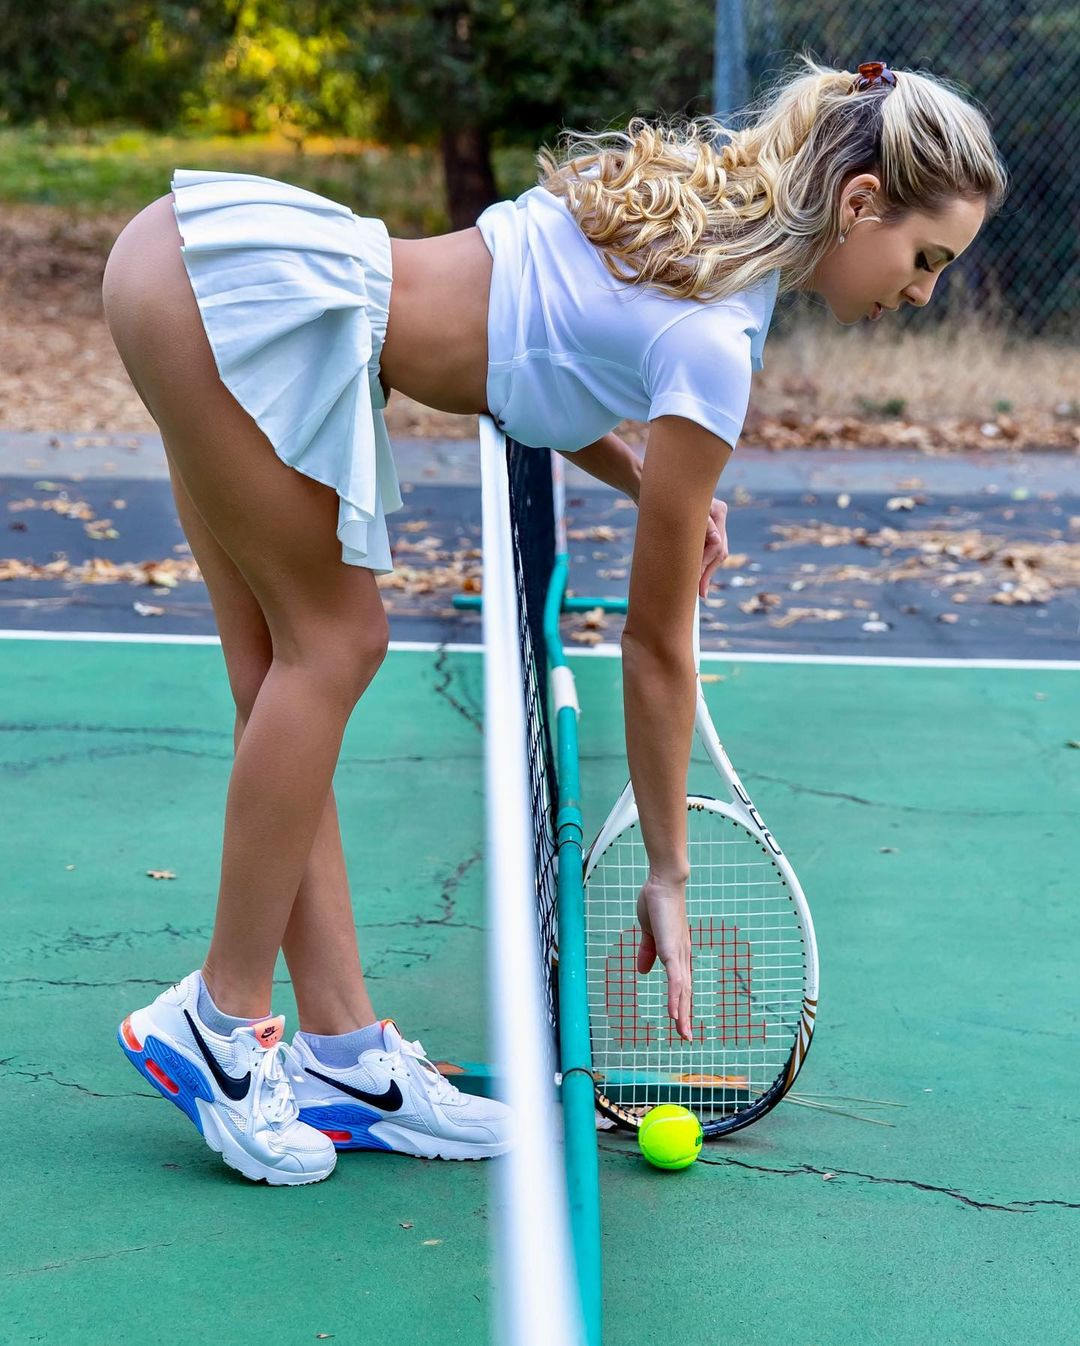 showing porn images for emma watson sex porn #tennis #bentover